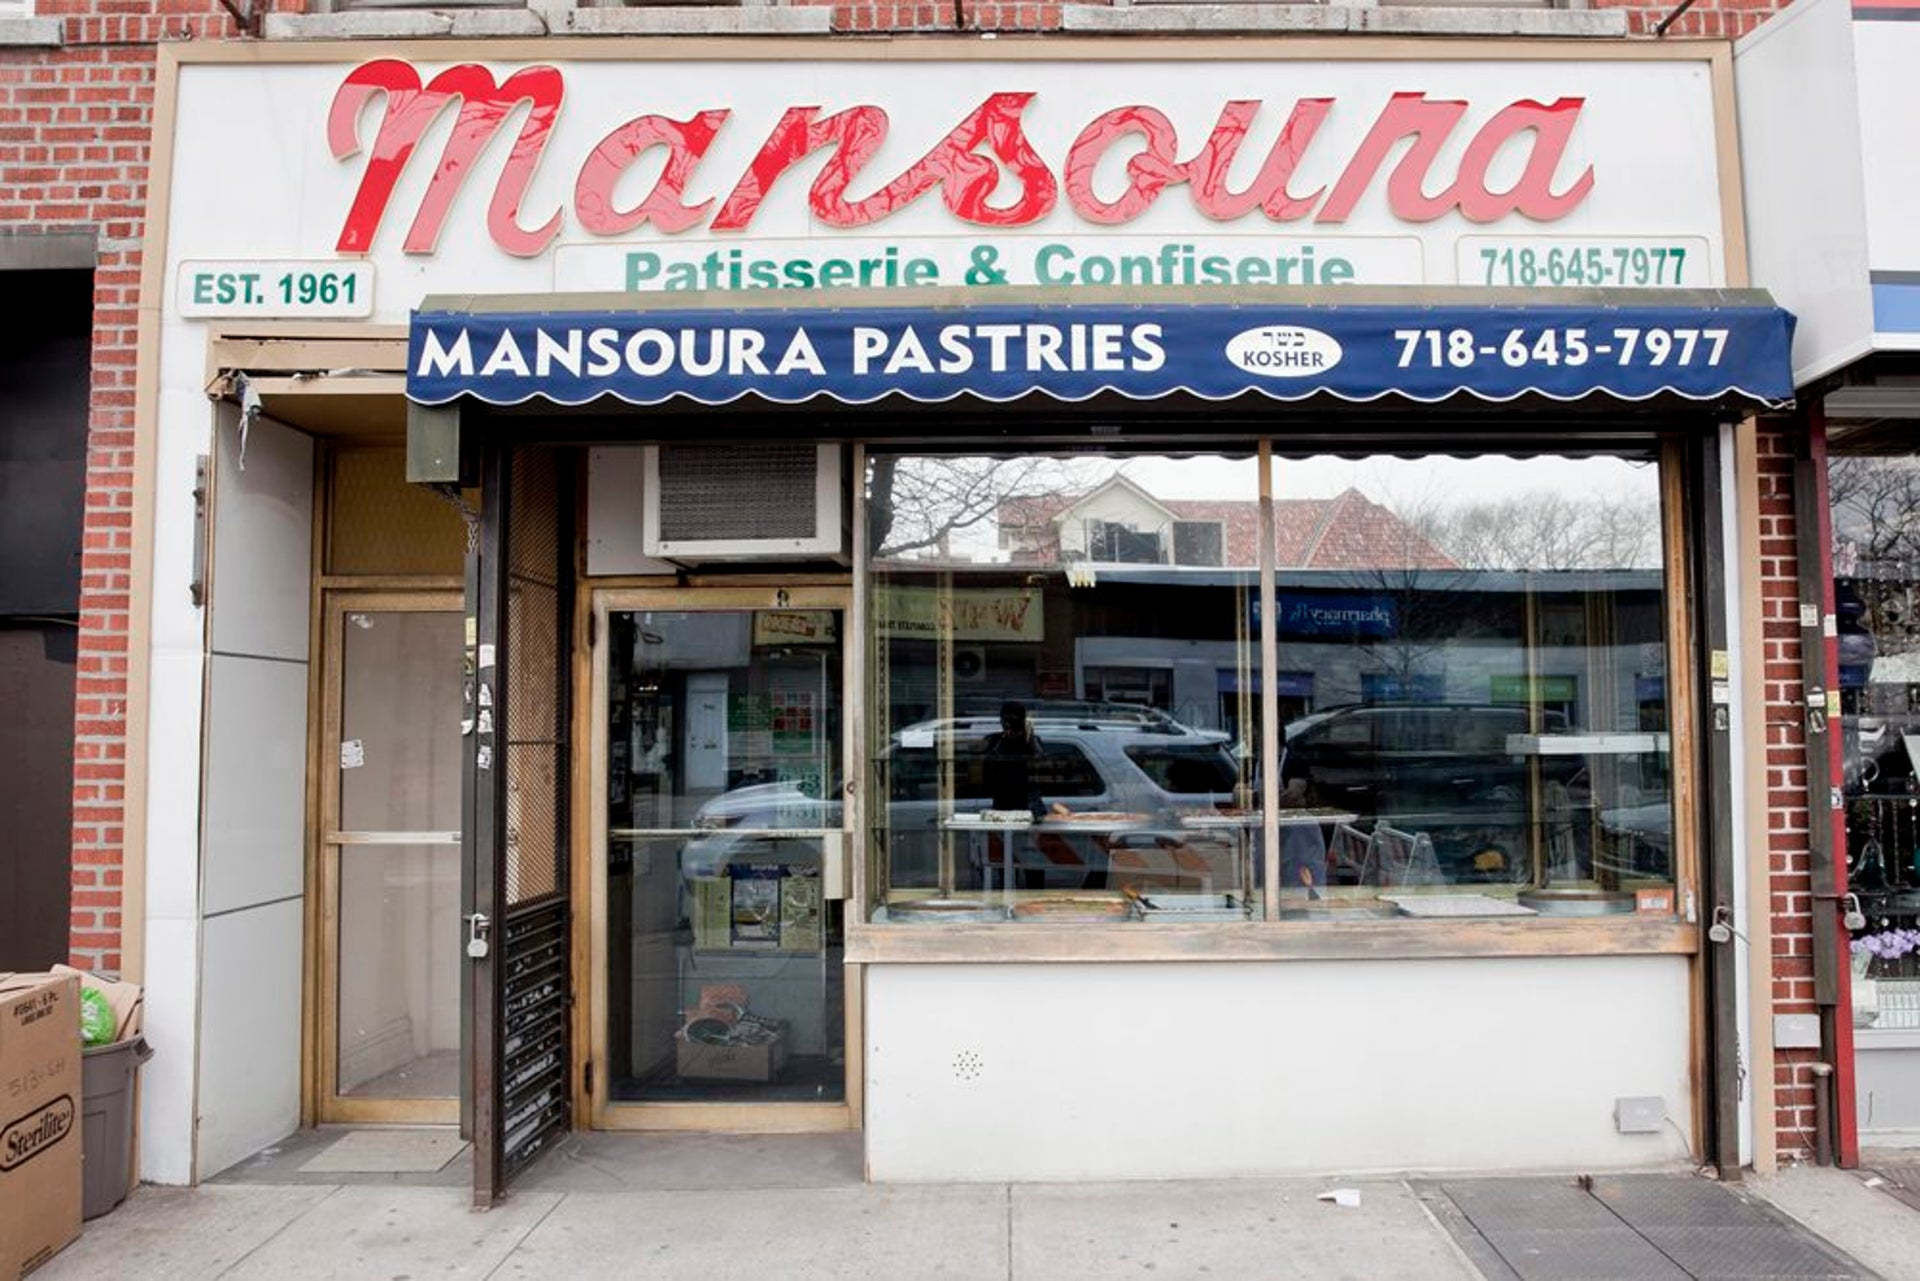 Mansoura Pastries in New York. One of the oldest and most famous Jewish bakeries in the city.